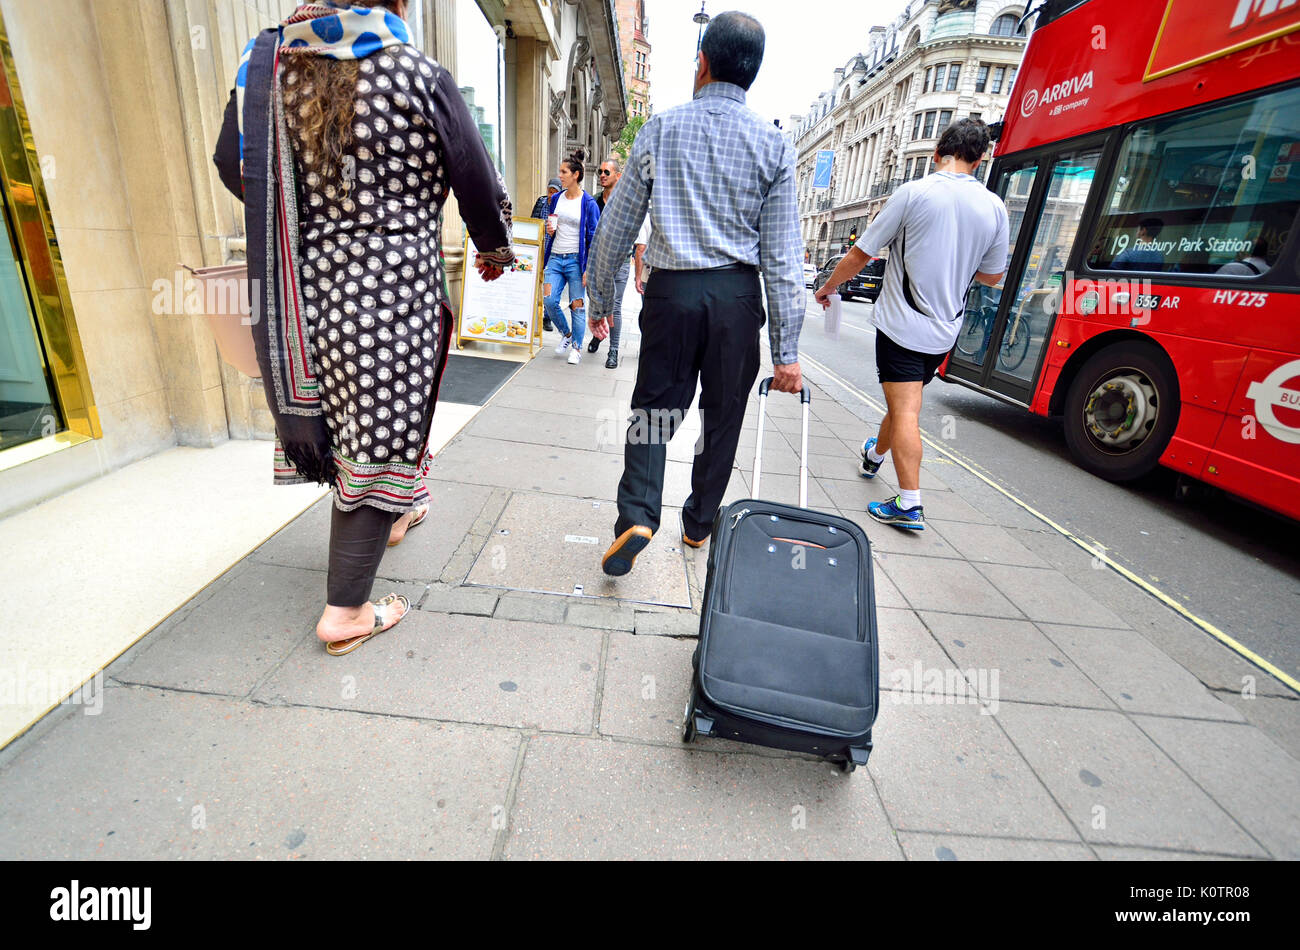 London, England, UK. Man pulling a wheeled suitcase in the street - Stock Image